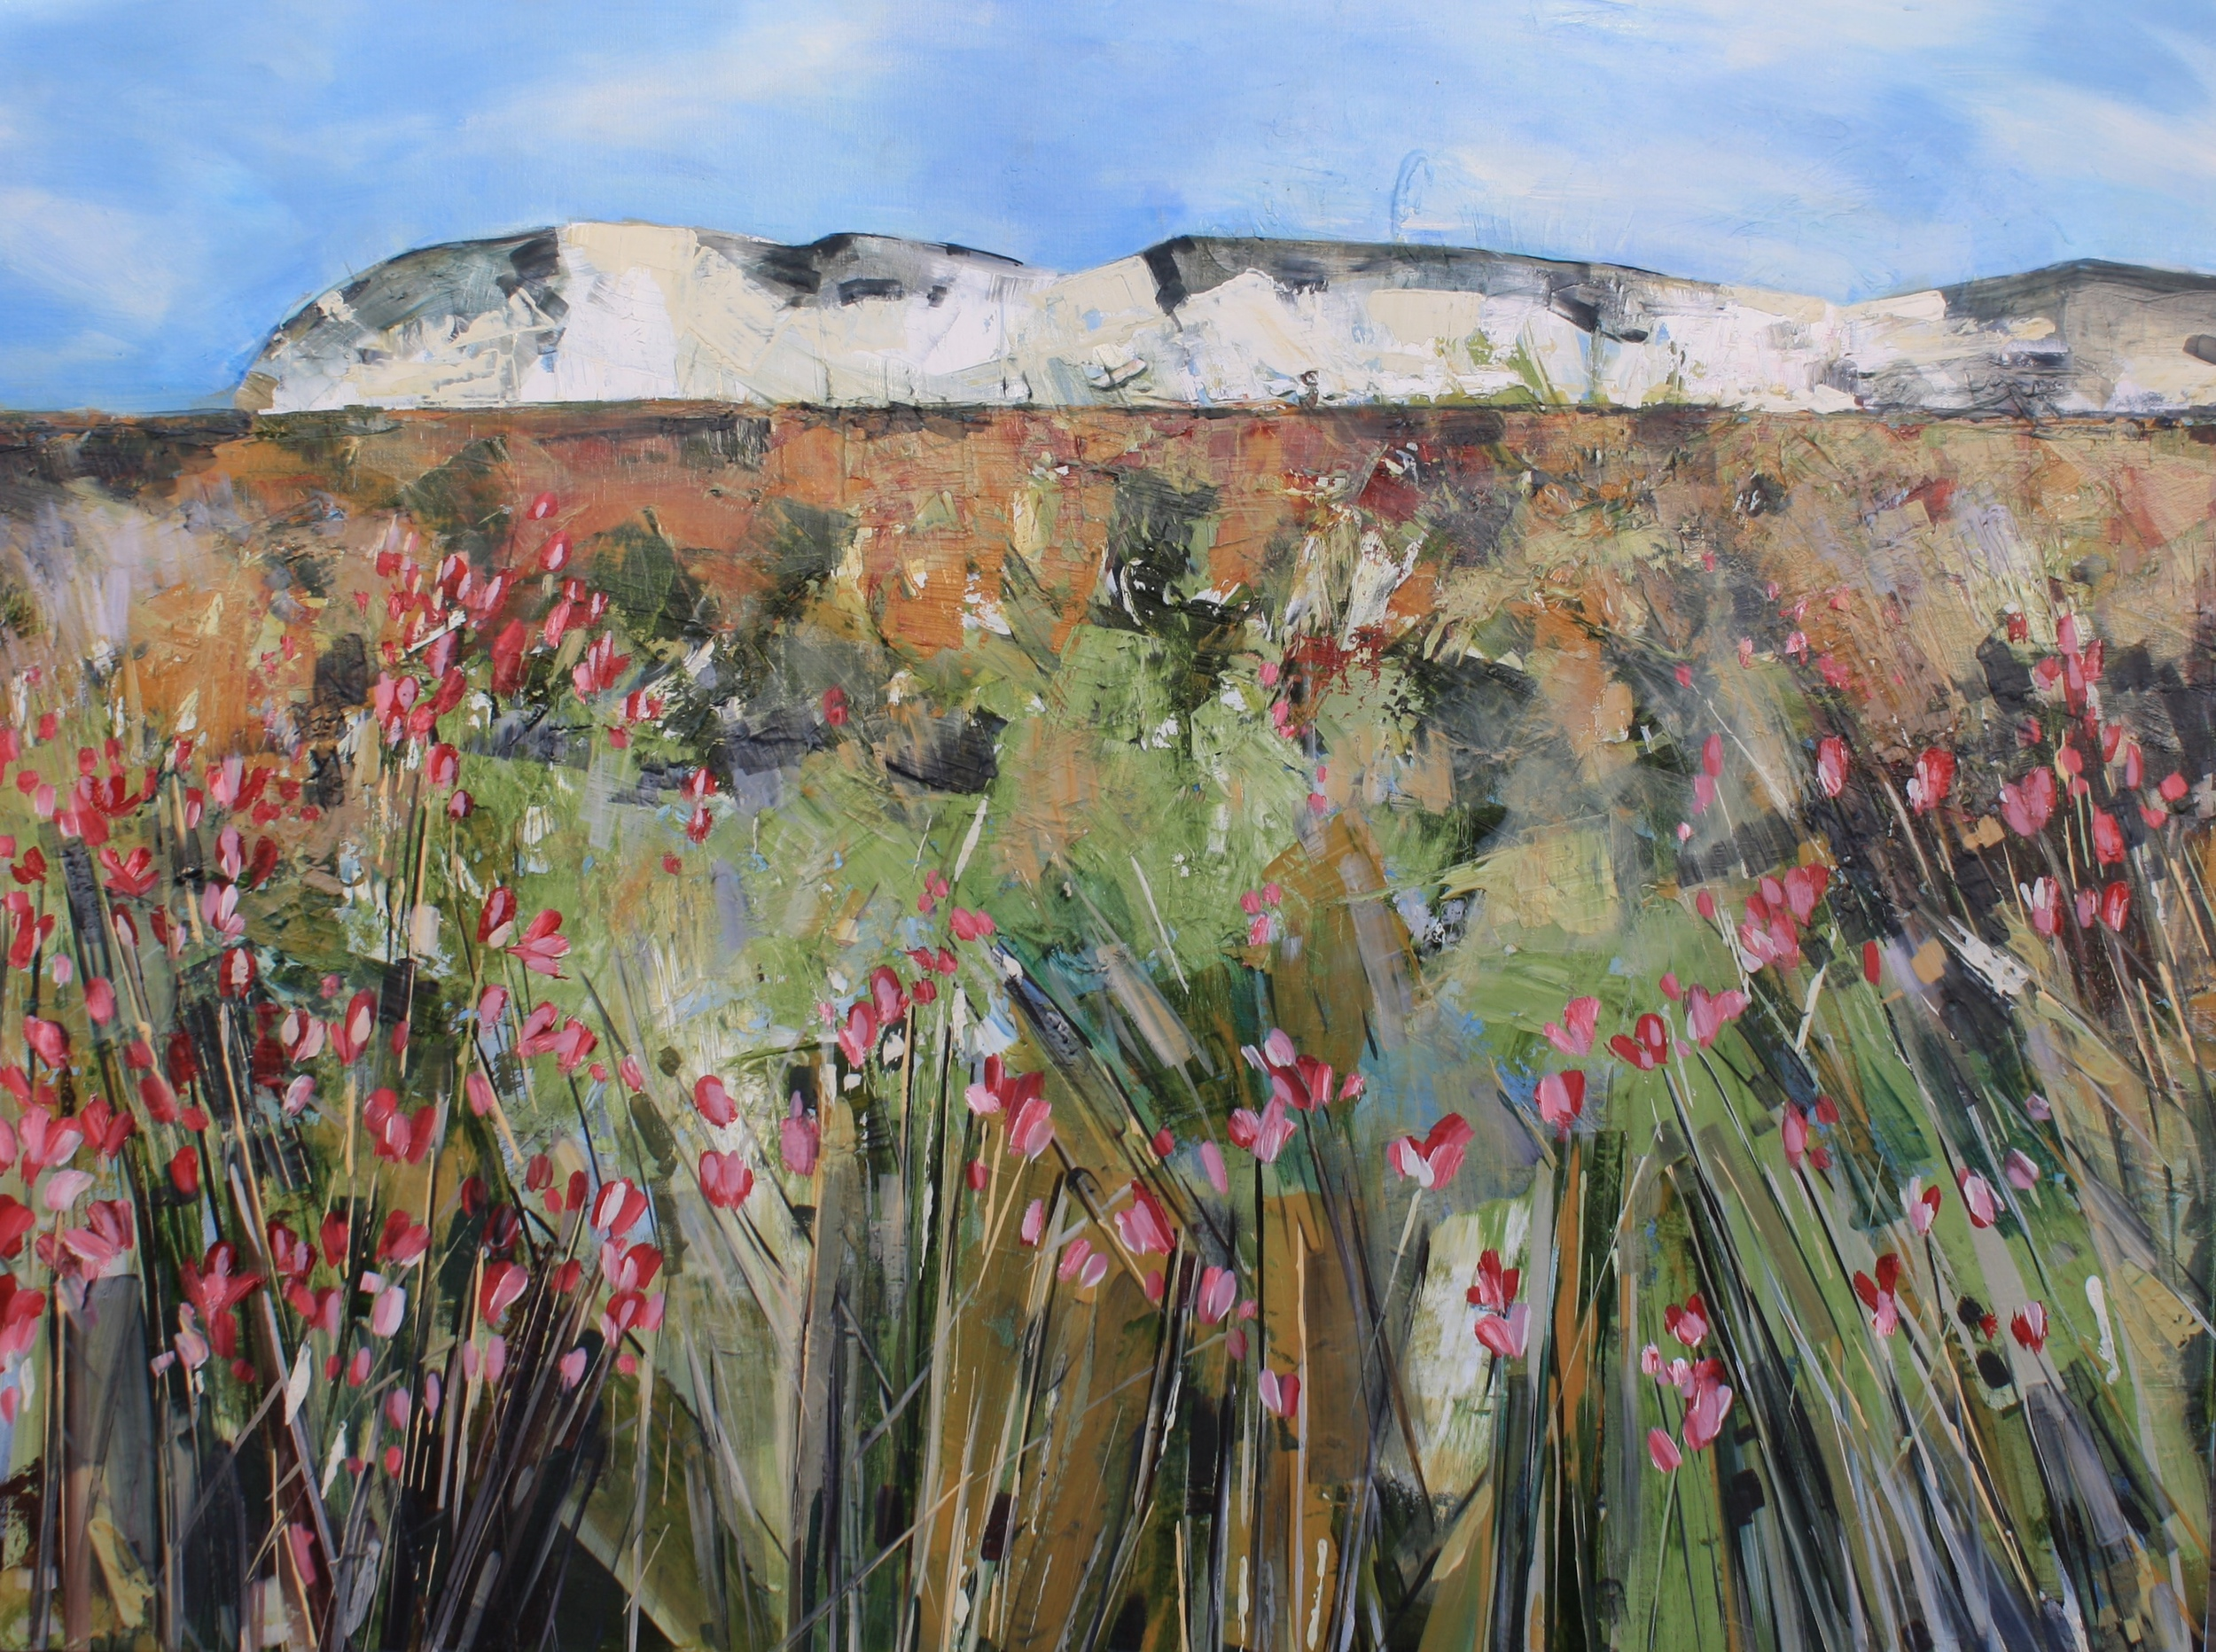 Field of Pink Flowers $2500 Measures 1020 mm w x 760 mm h